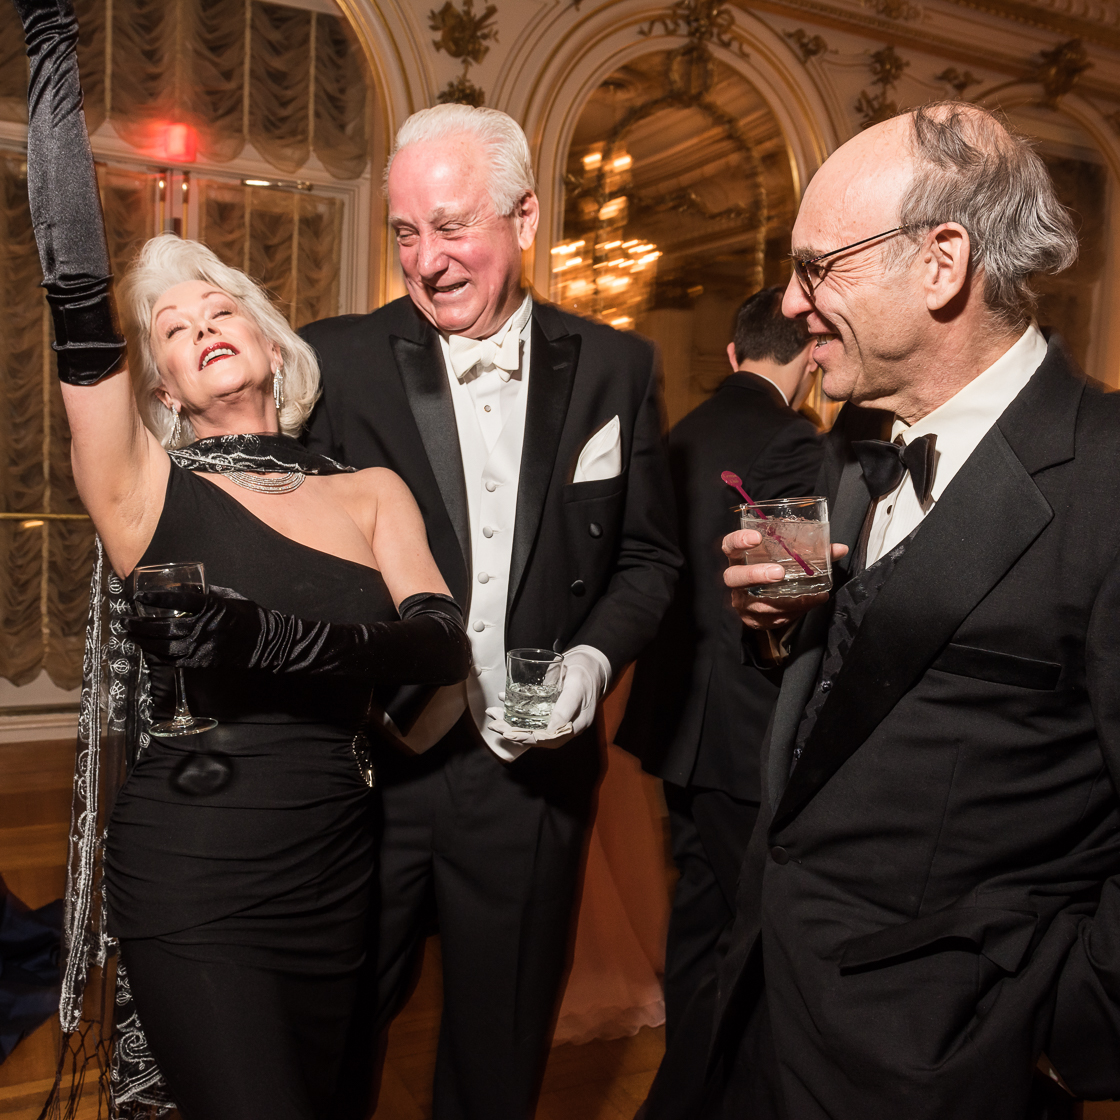 Retired society writer Robin Phillips shows off her fabulous side as Timothy Thomas and scientist Andrew Sostek look on.